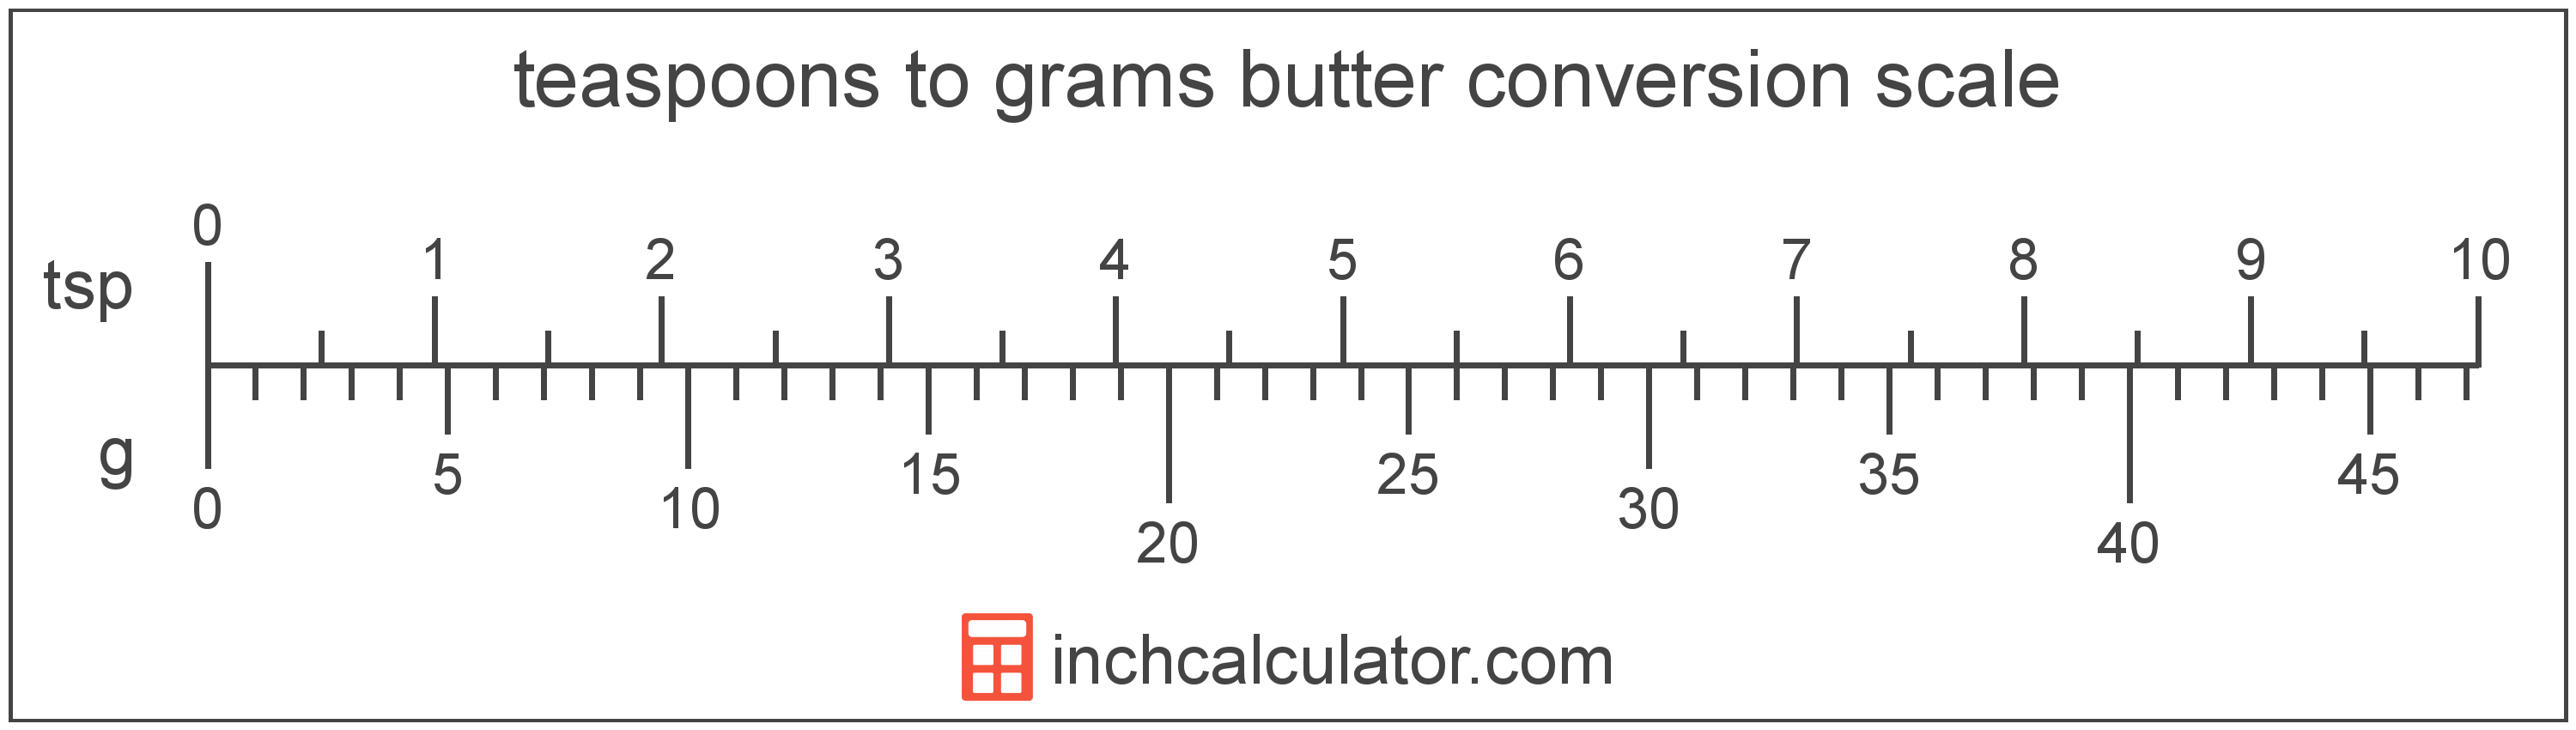 Grams of Butter to Teaspoons Conversion (g to tsp)